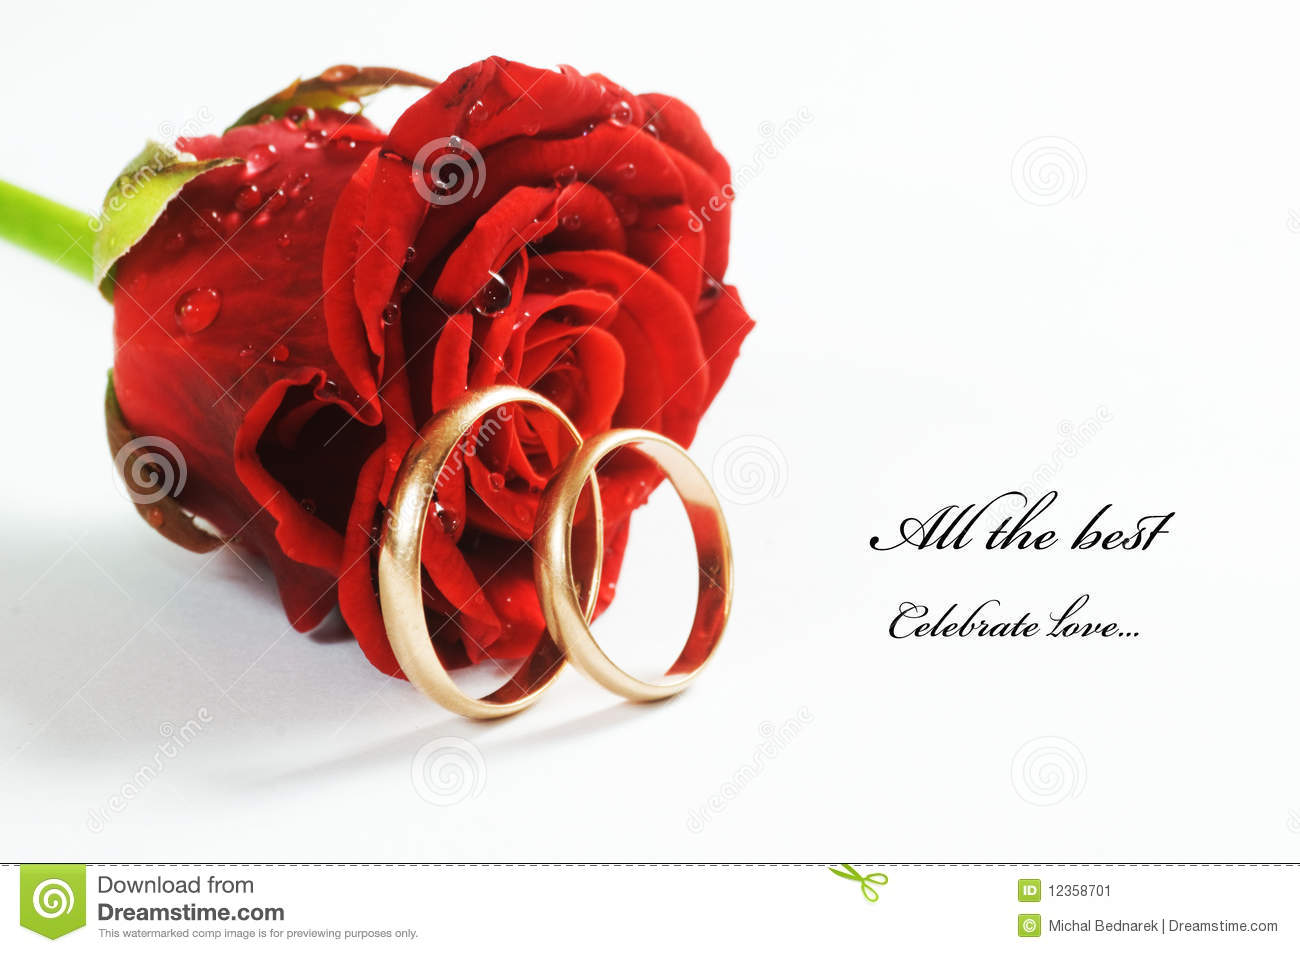 Wedding Anniversary Wallpaper With Quotes Red Rose And Wedding Ring Stock Image Image 12358701